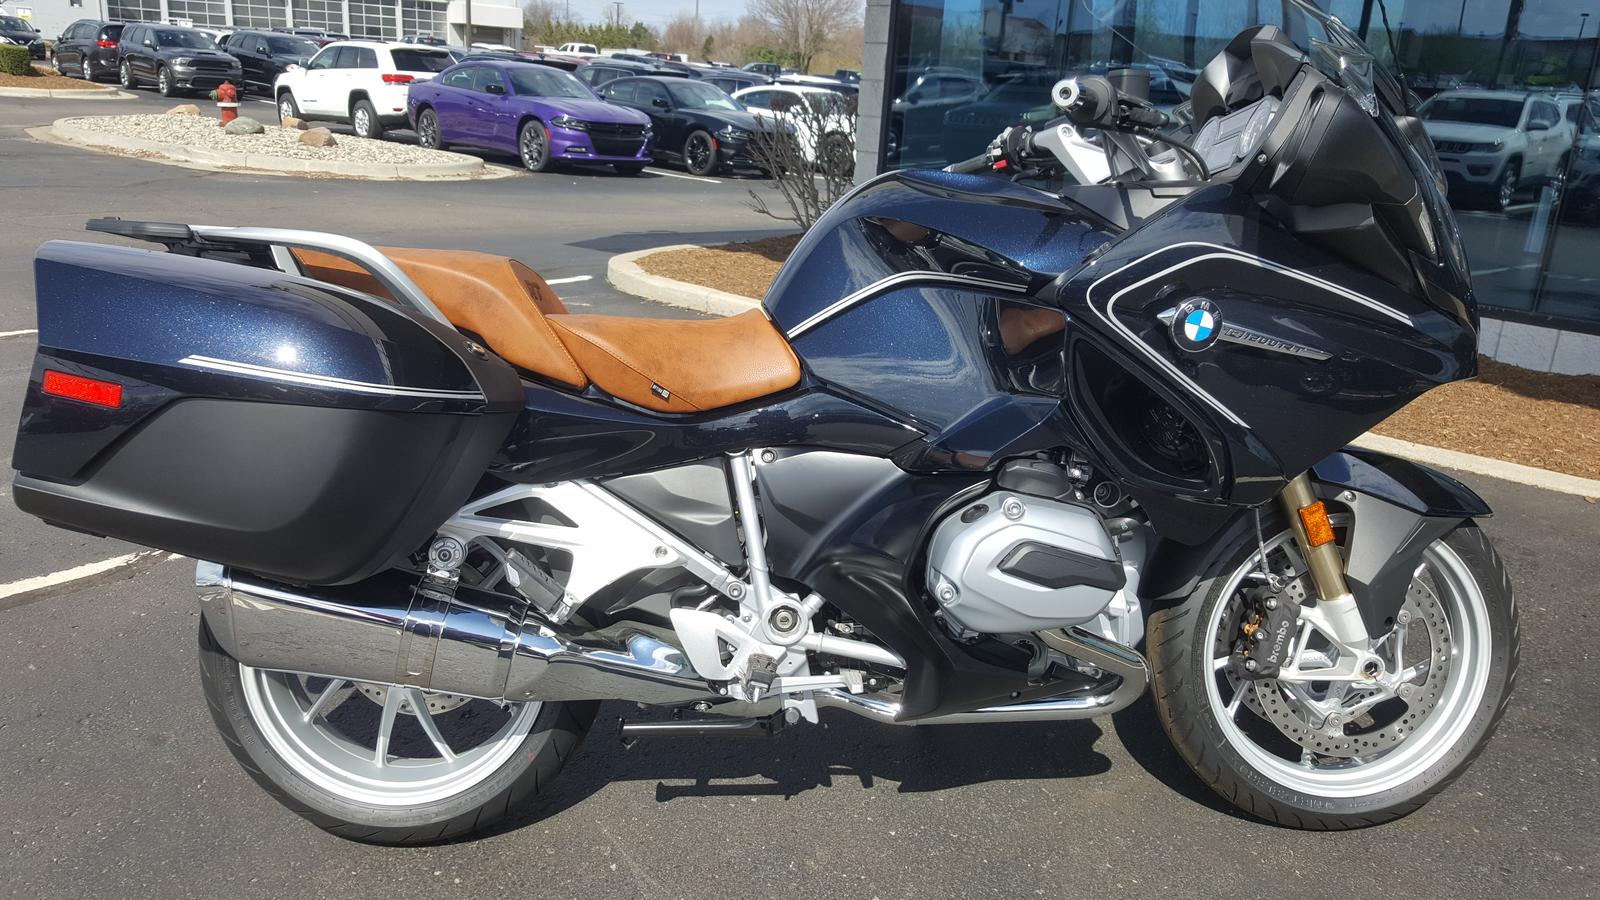 2018 Bmw R1200rt Option 719 Demonstrator For Sale In Rochester